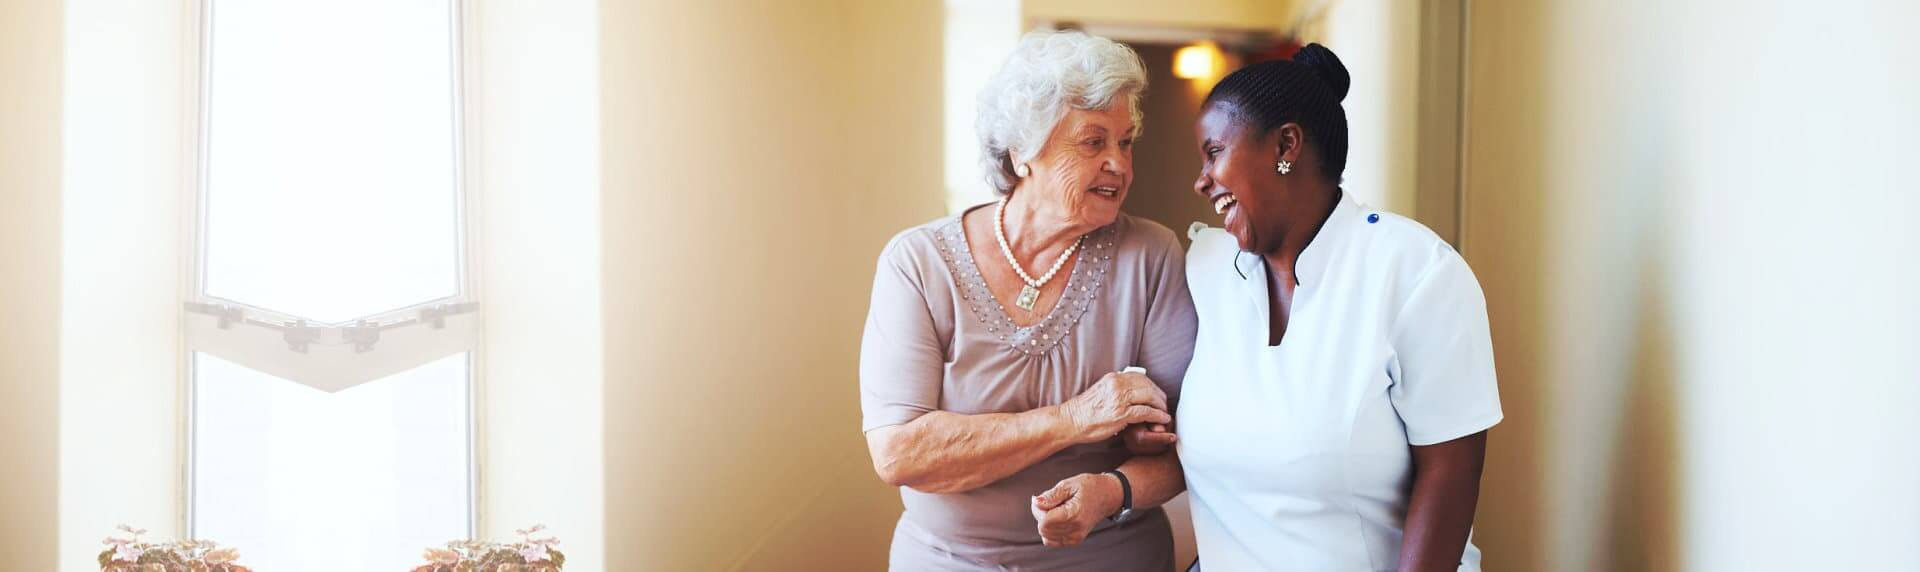 caregiver and senior woman walking together